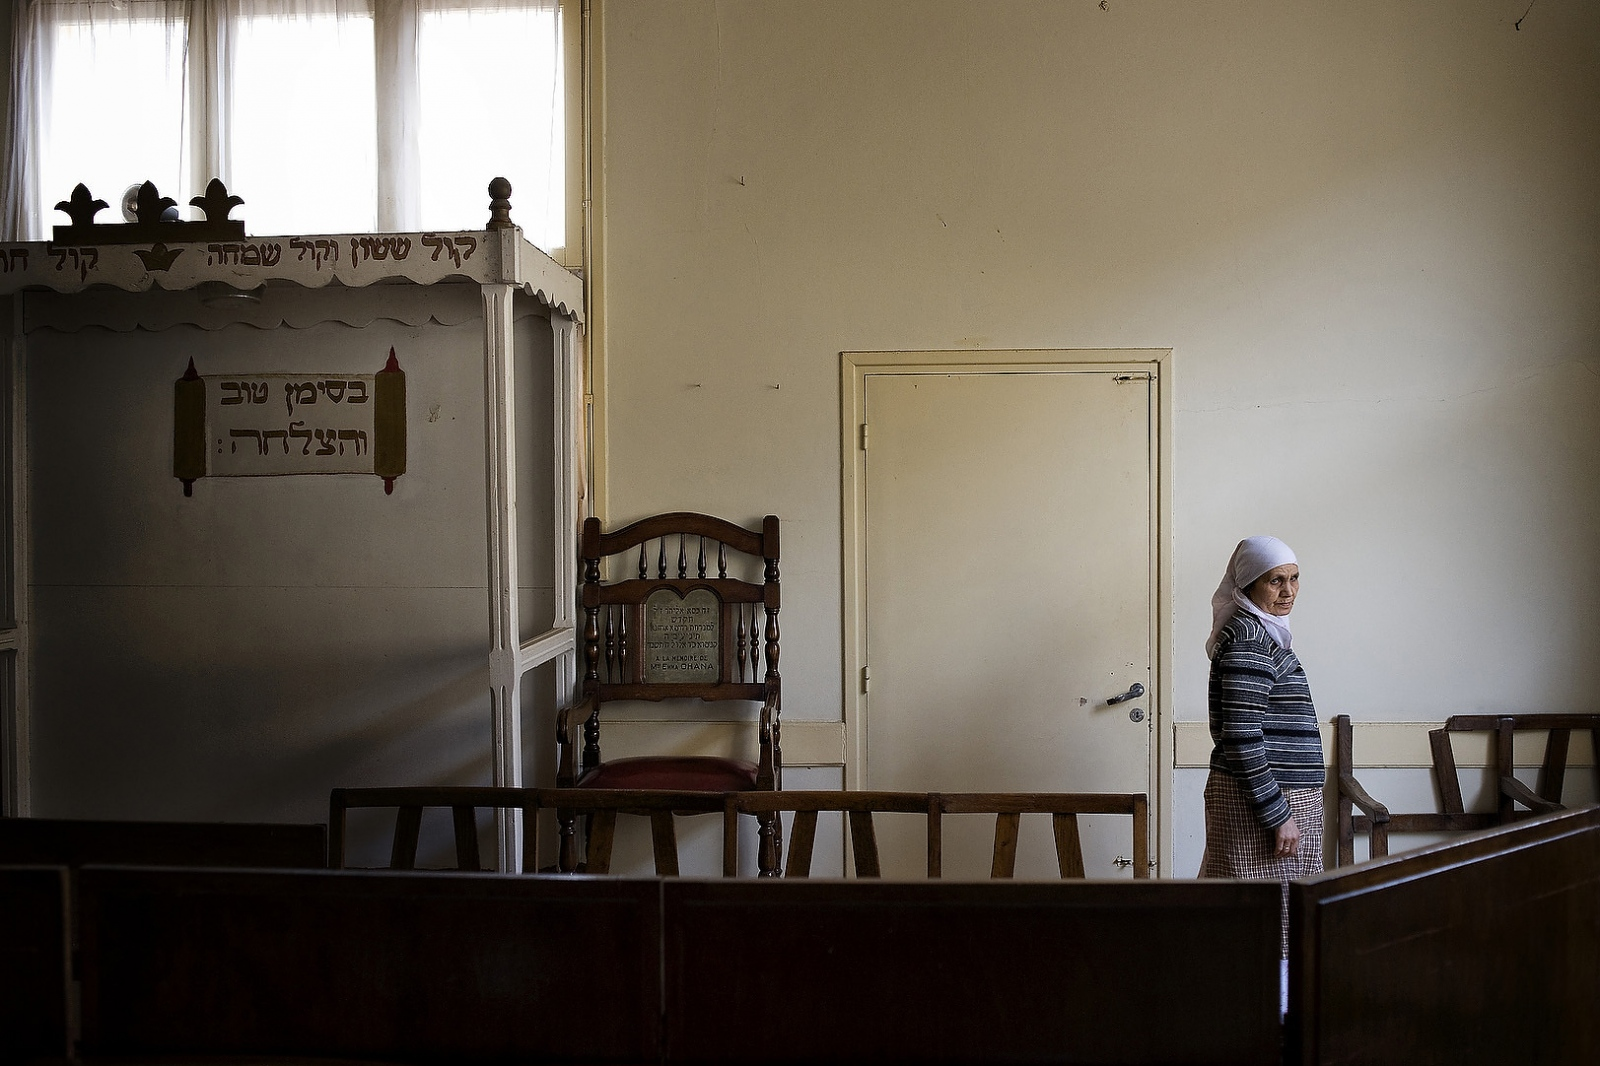 2010 - Raabh Amssnu, the guardian of the Synagogue in Kenitra, Morocco. Her husband began working at the synagogue when he was 19, but has since passed. Now she and her son Rachid continue the work.